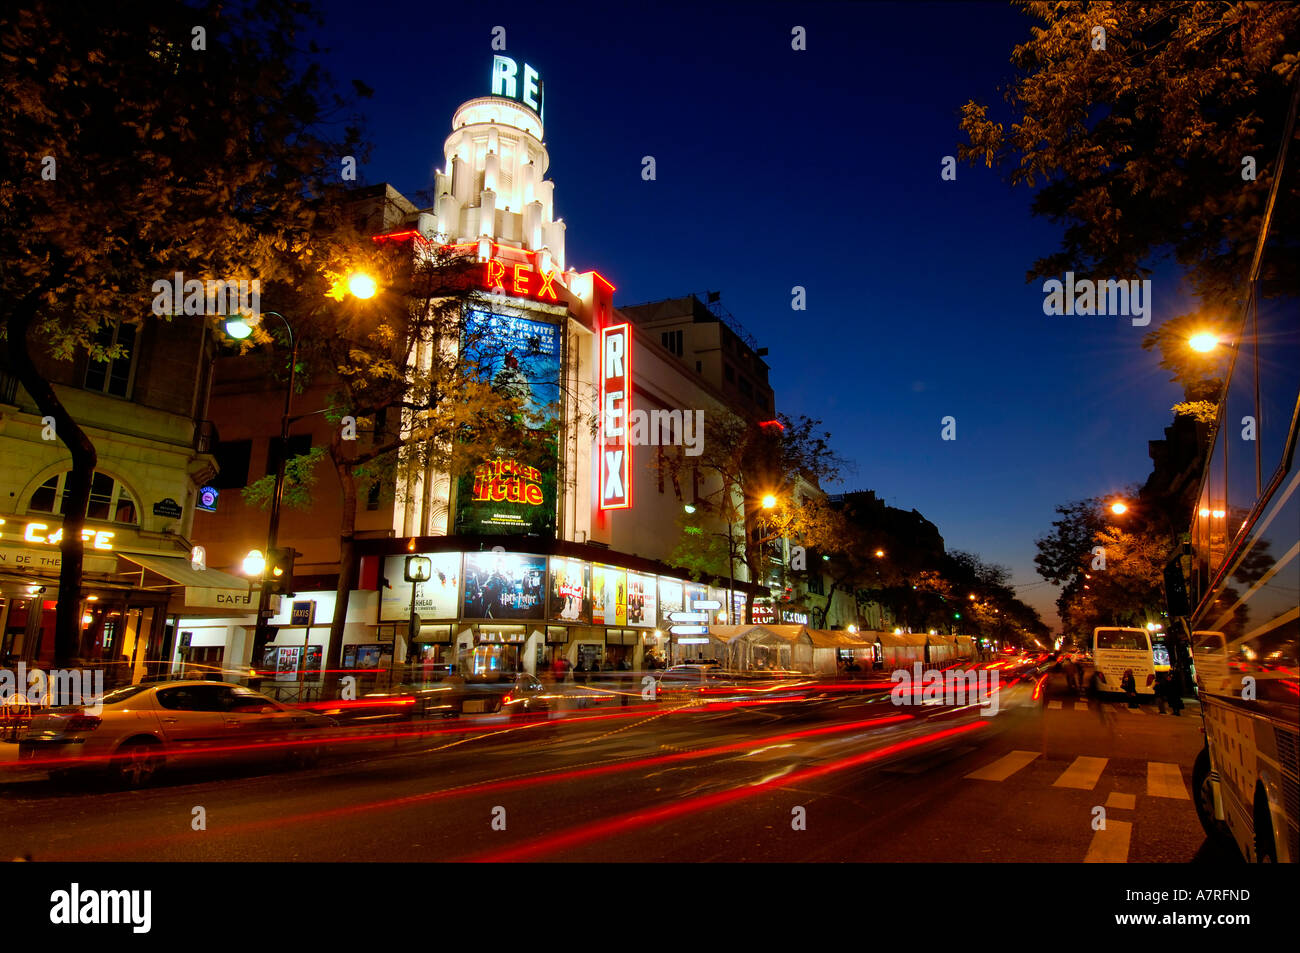 france paris grand rex cinema stock photo royalty free image 6800028 alamy. Black Bedroom Furniture Sets. Home Design Ideas